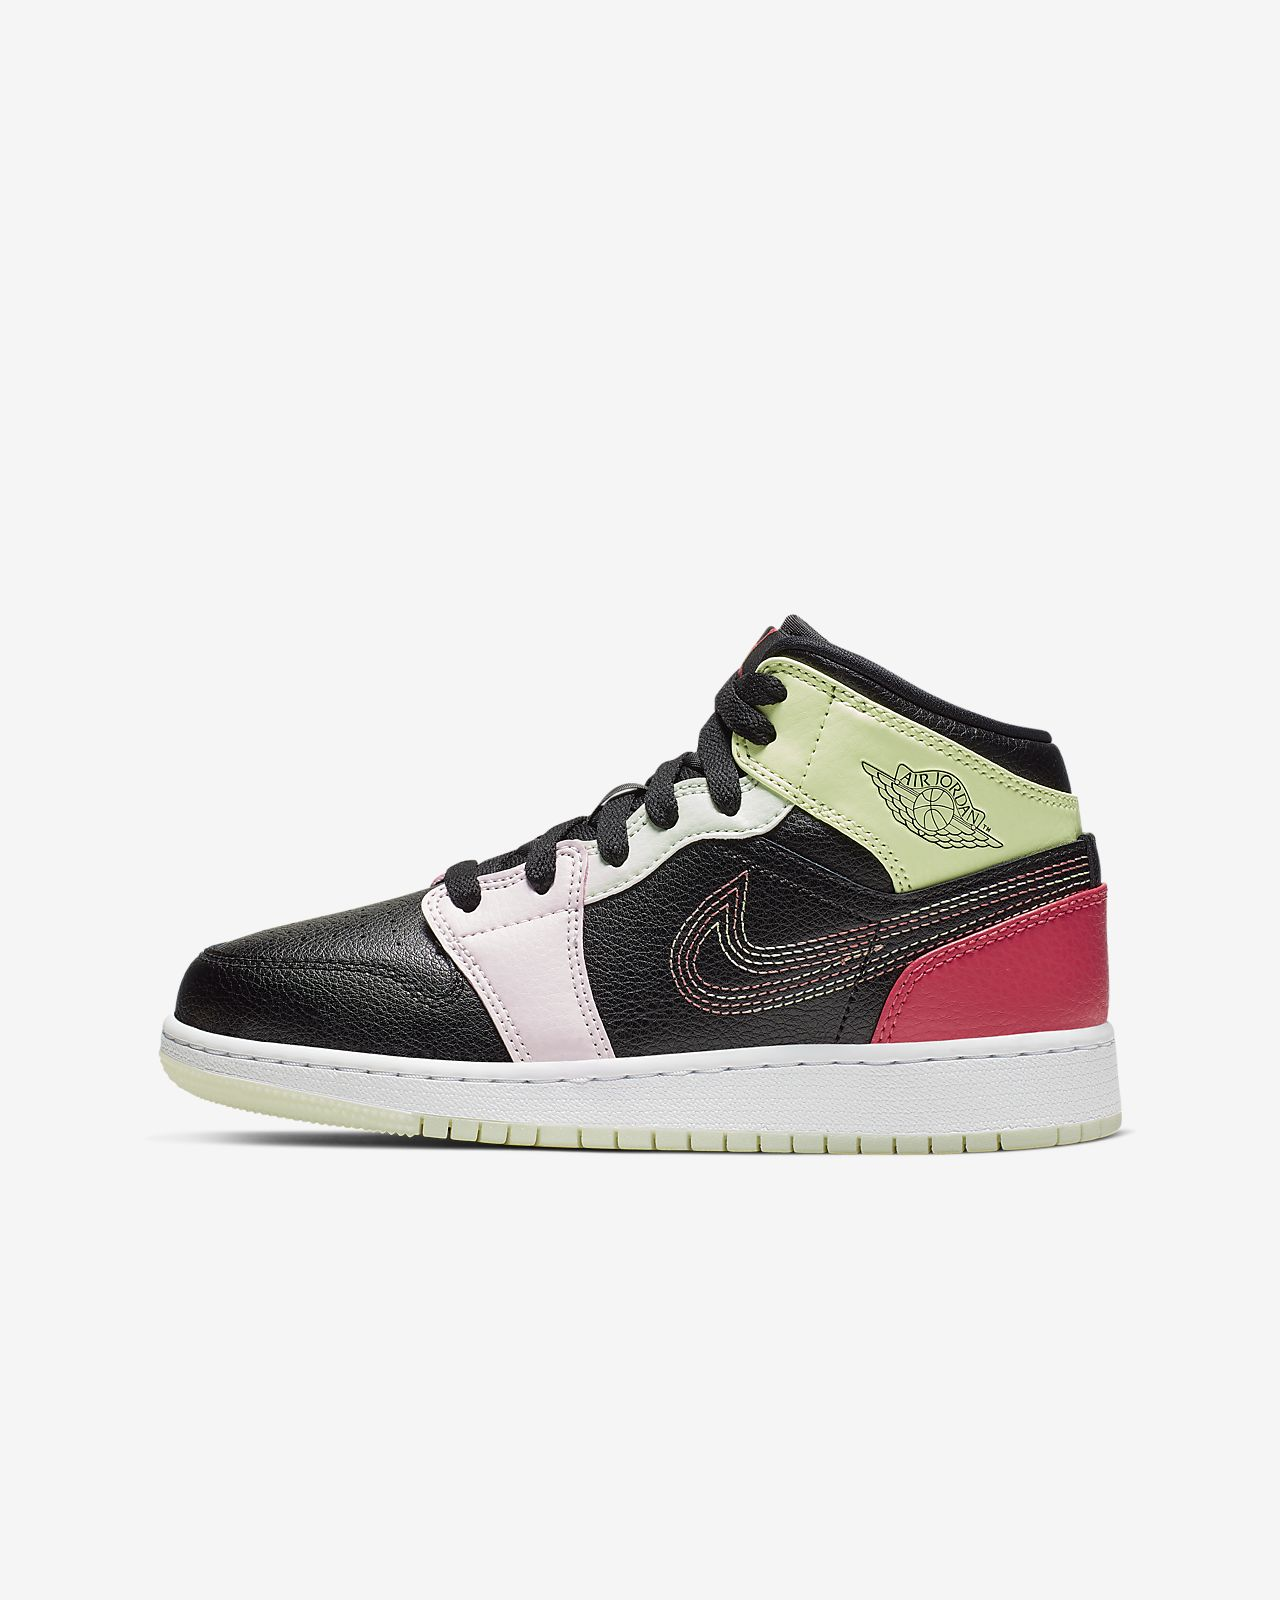 reputable site 081bd f9db6 Air Jordan 1 Mid SE Big Kids' Shoe (3.5y-9.5y)